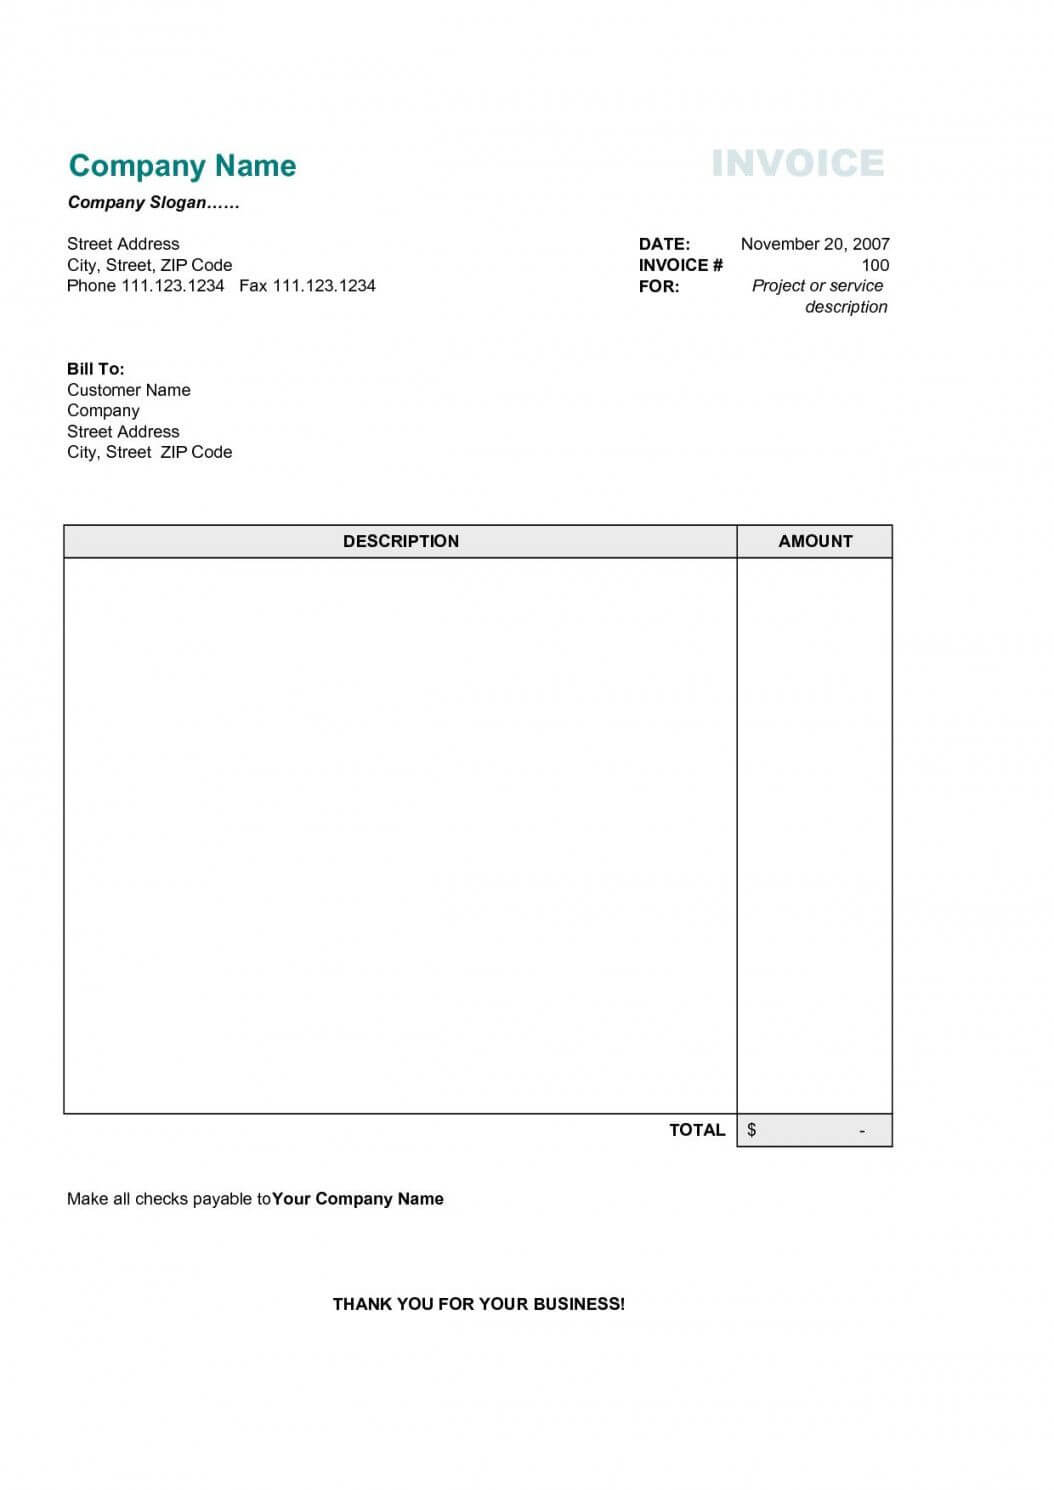 Download Proforma Invoice Template Word | Free Invoice Inside Free Proforma Invoice Template Word